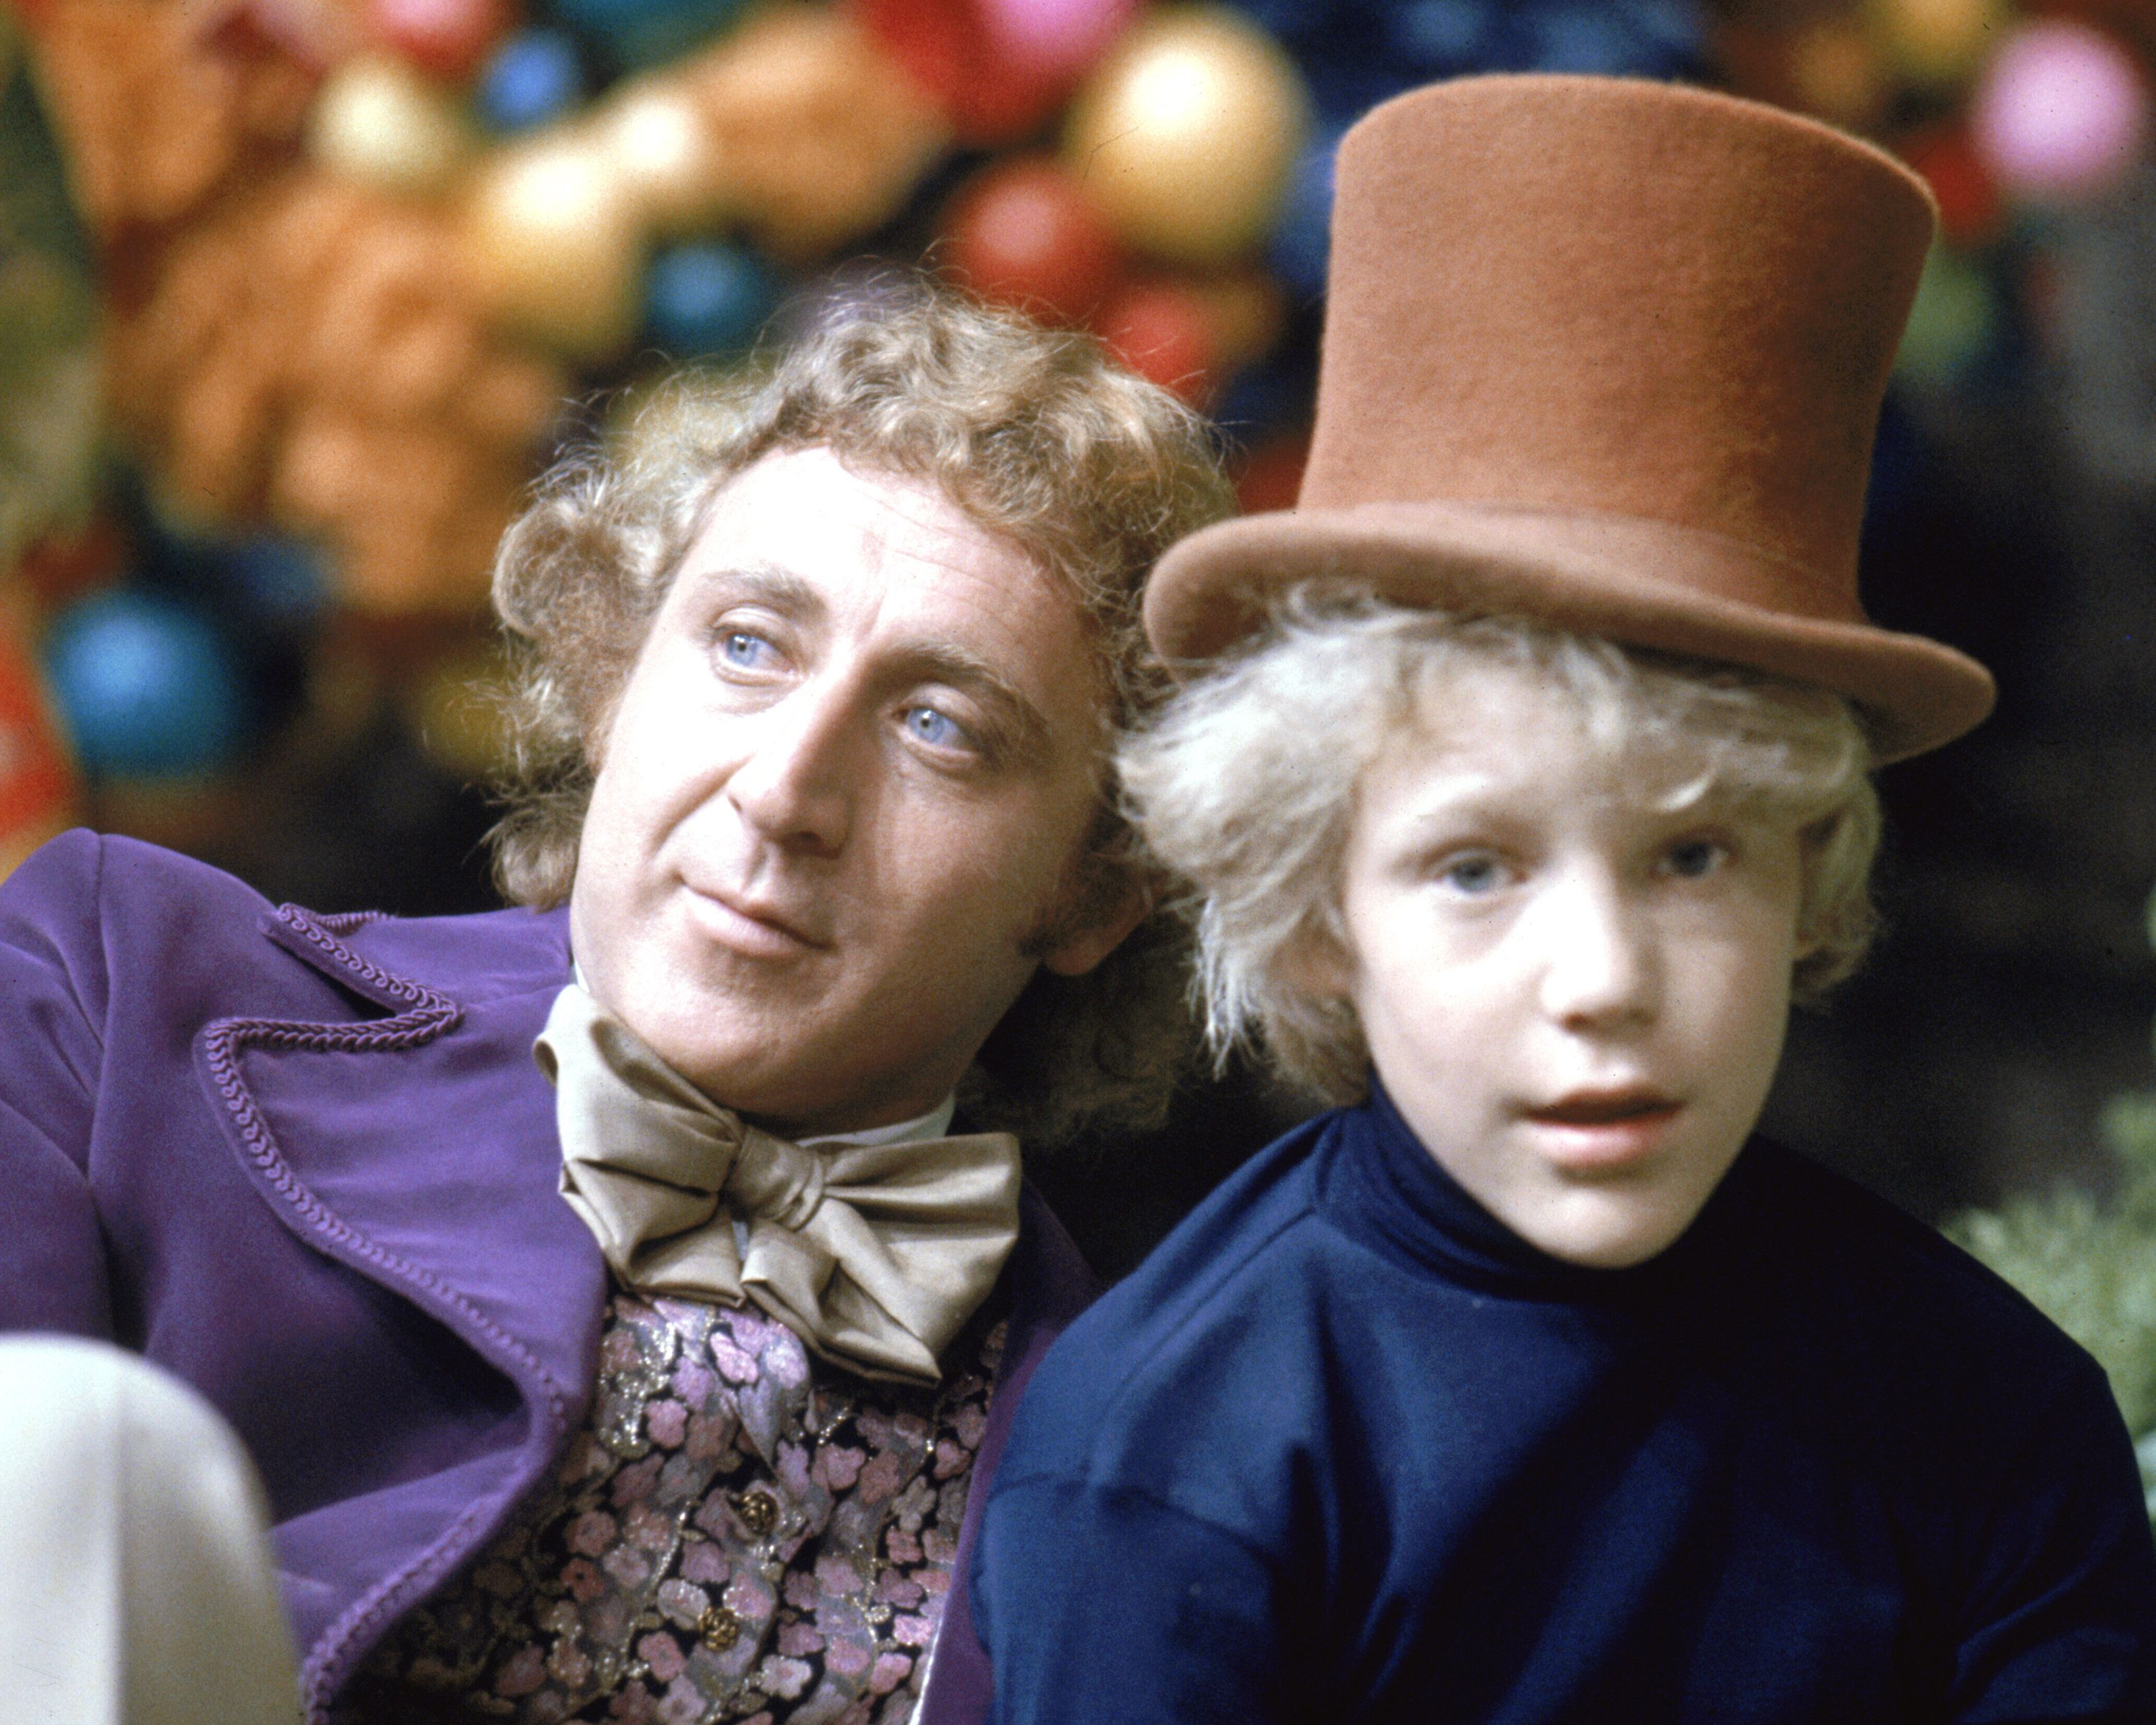 """Gene Wilder as Willy Wonka and Peter Ostrum as Charlie Bucket on the set of the film """"Willy Wonka & the Chocolate Factory"""